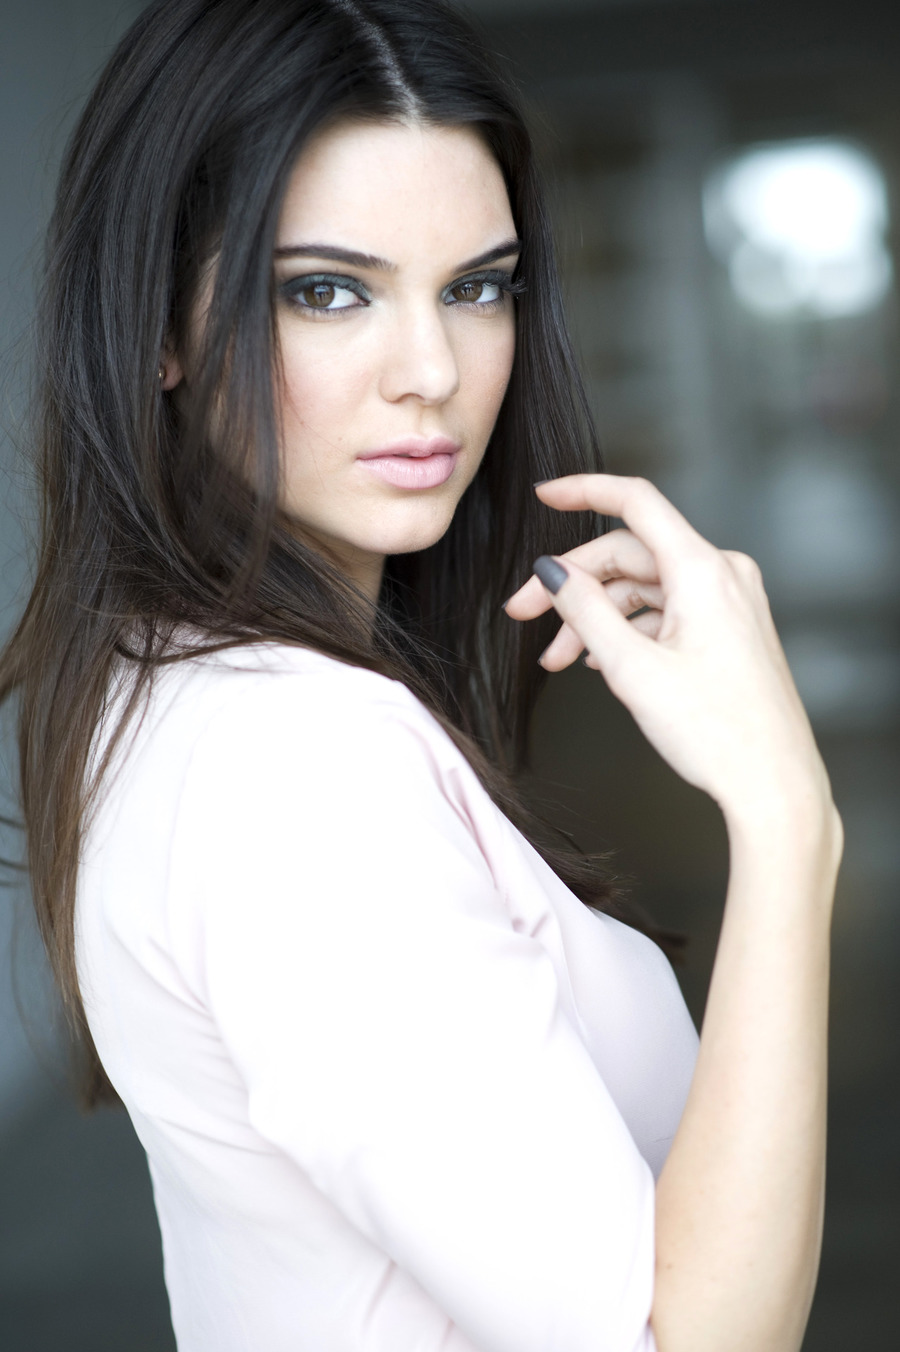 15 Things You Probably Didn't Know About Kendall Jenner| Kendall for Estée Lauder